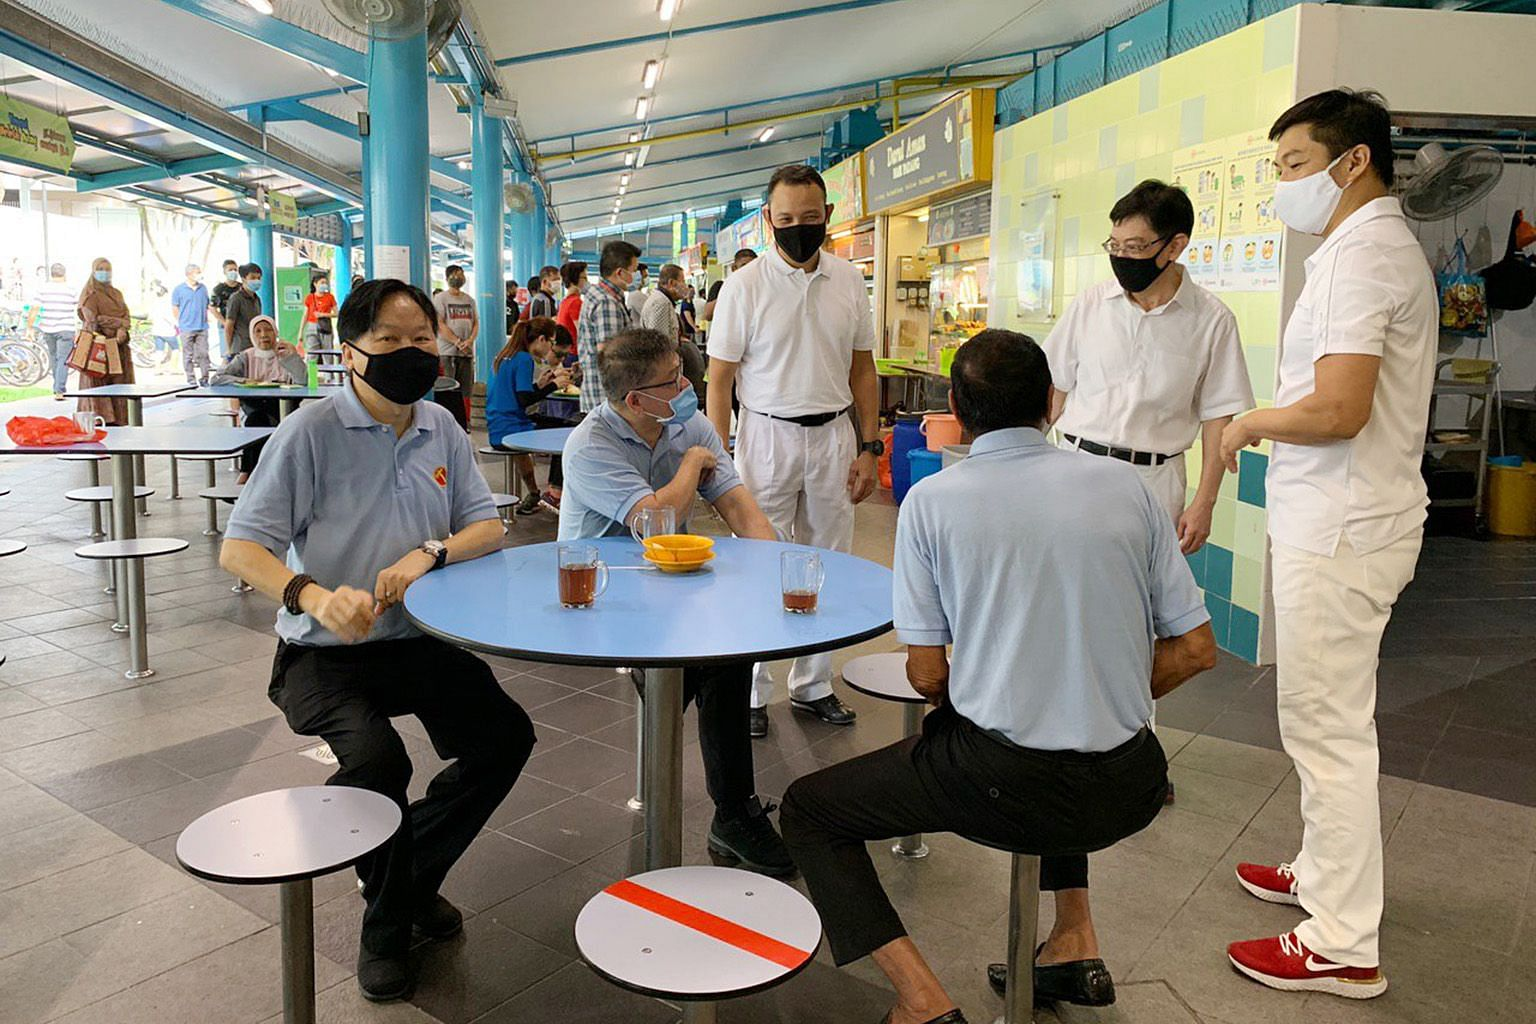 PAP's new candidate Desmond Tan greeting a resident at Loyang Point shopping mall yesterday. With him were fellow new face Mohamed Sharael Mohd Taha (second from right) and Mr Zainal Sapari (far right). PHOTO: TAMIL MURASU (From right) Speaker of Par